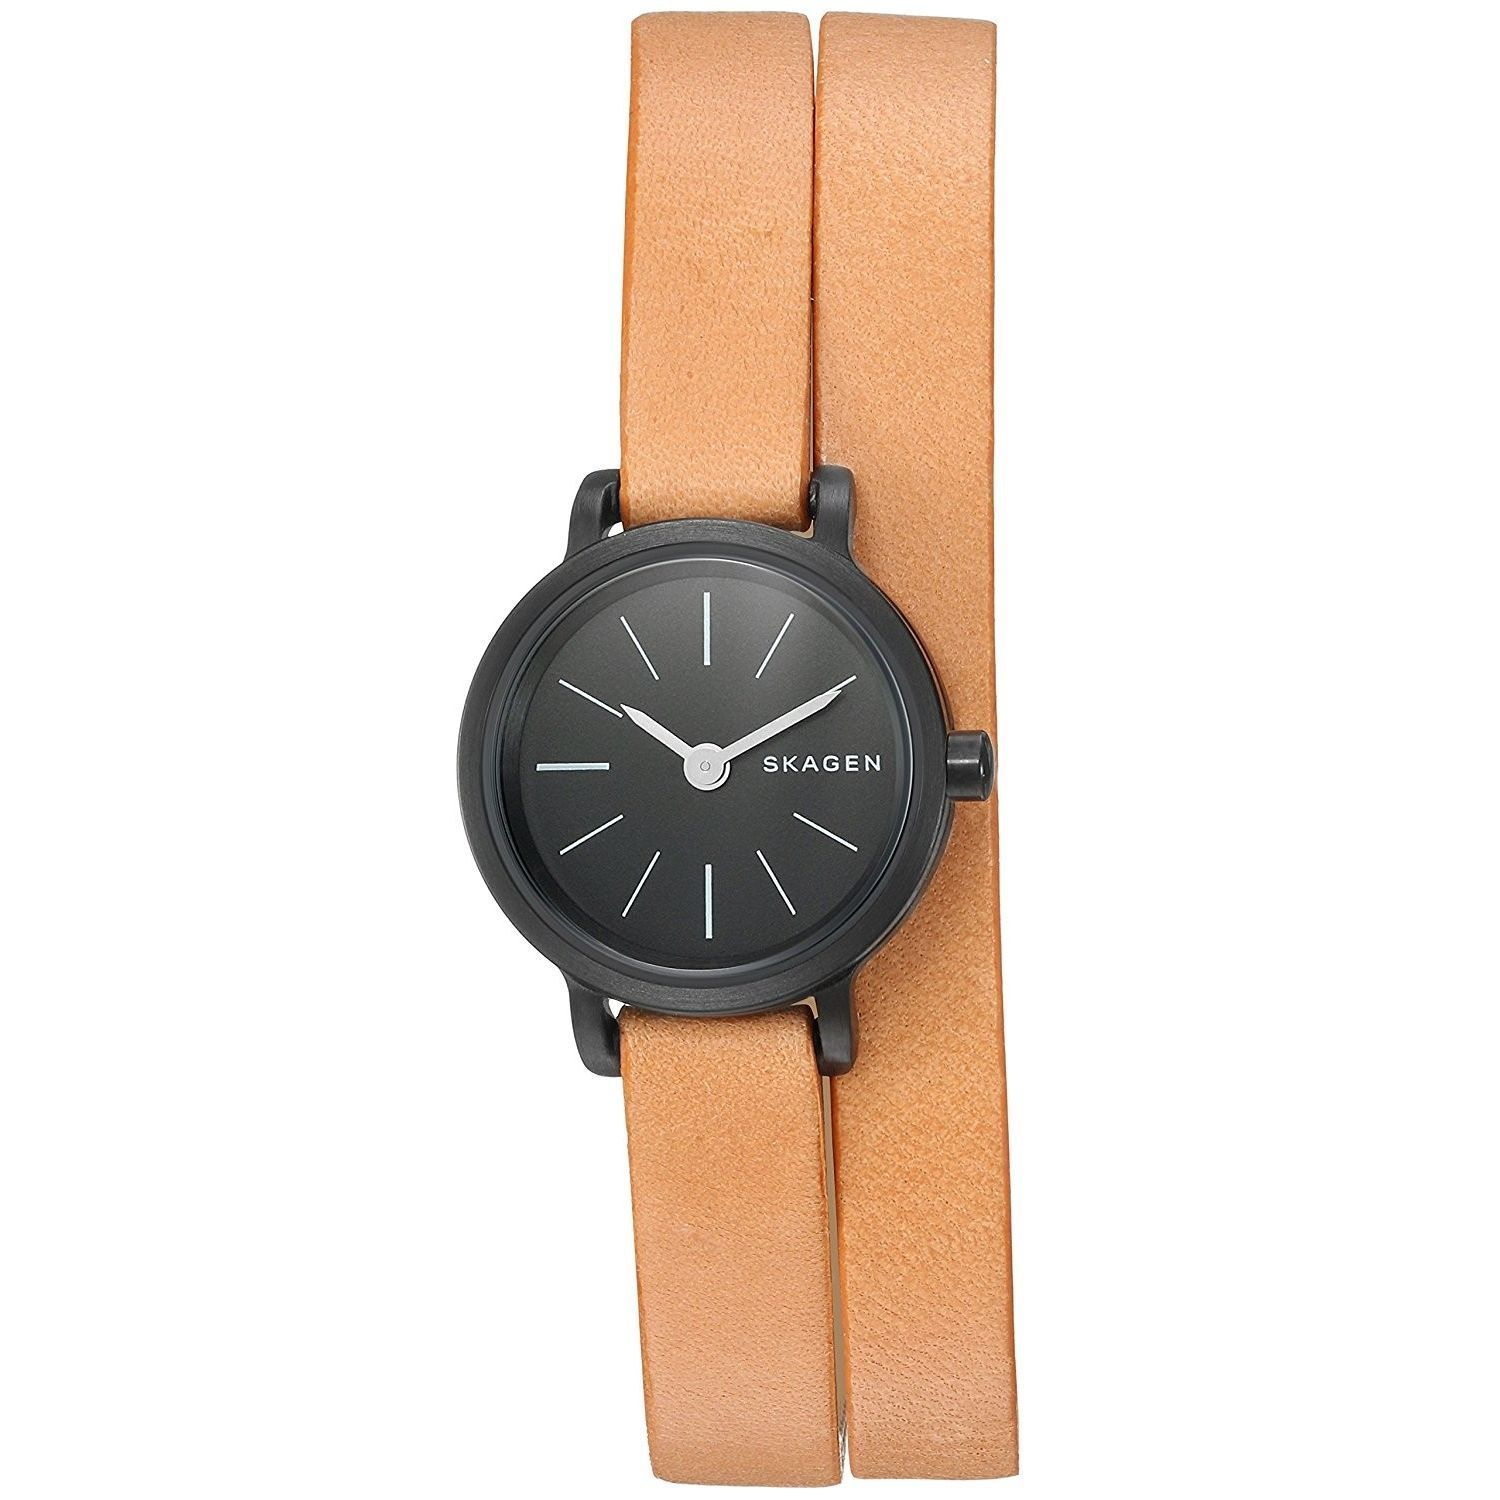 hagen watch watches skagen